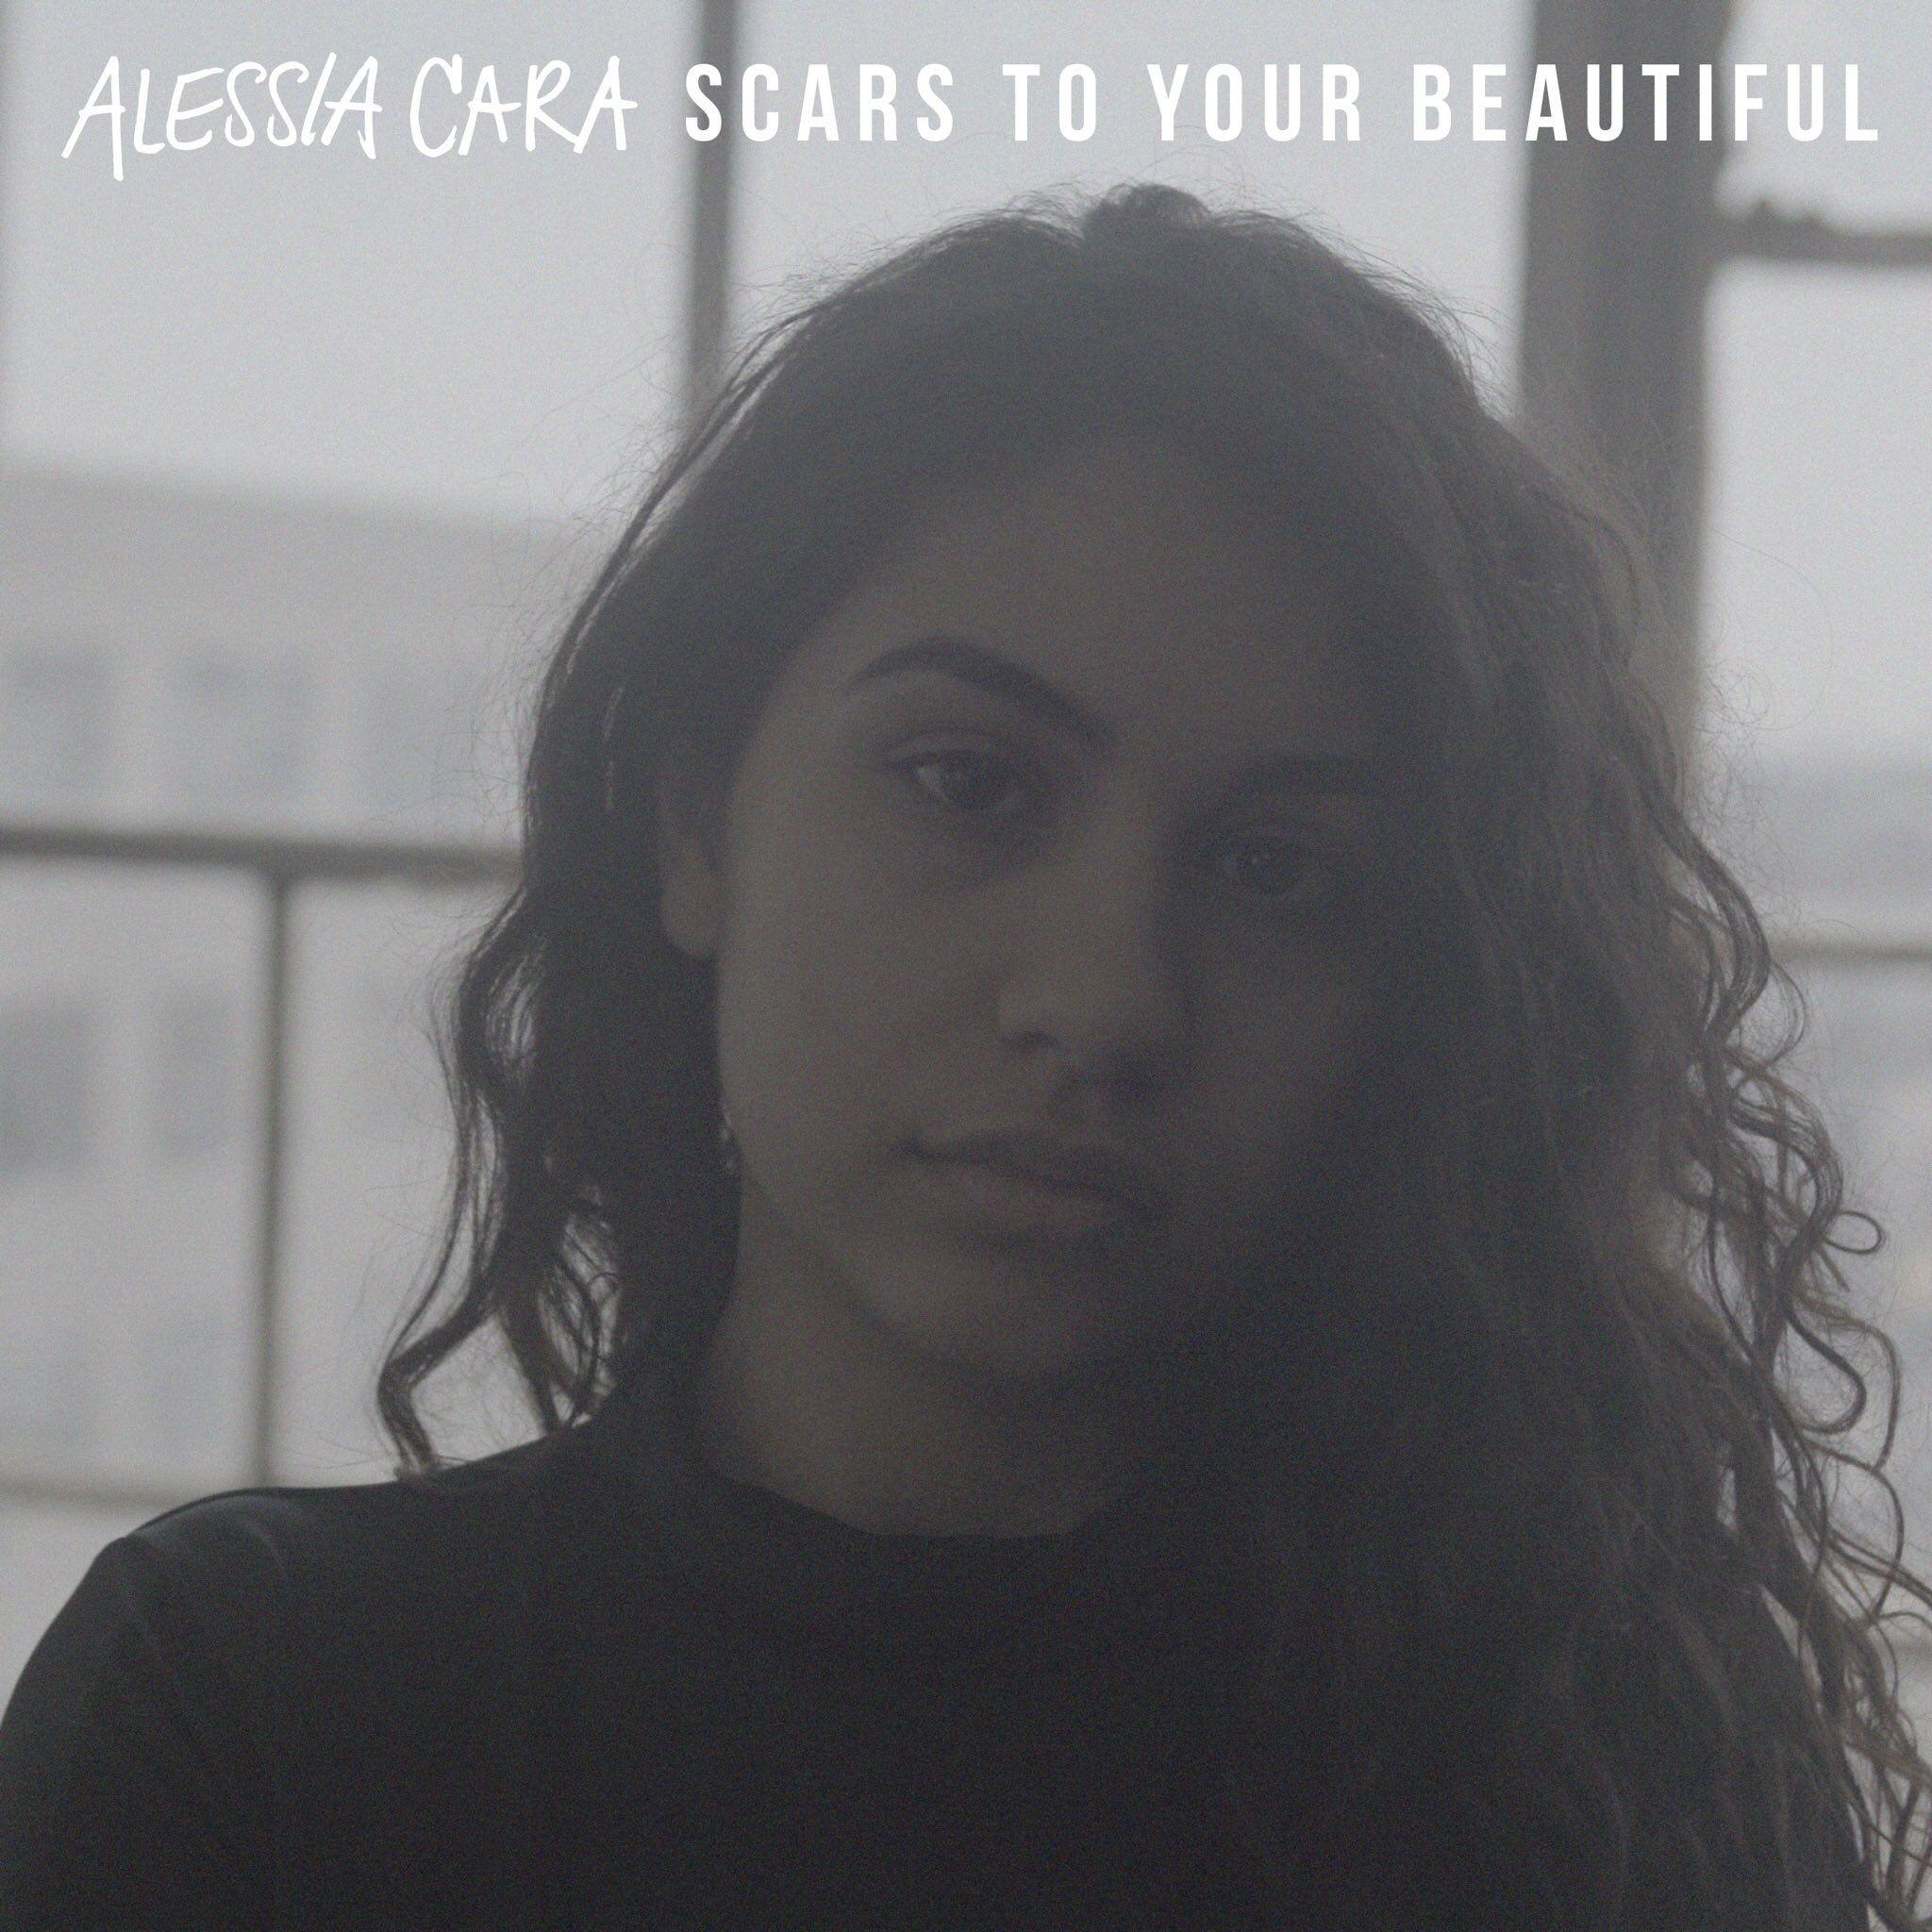 Alessia Cara image Scars to your beautiful artwork HD wallpapers